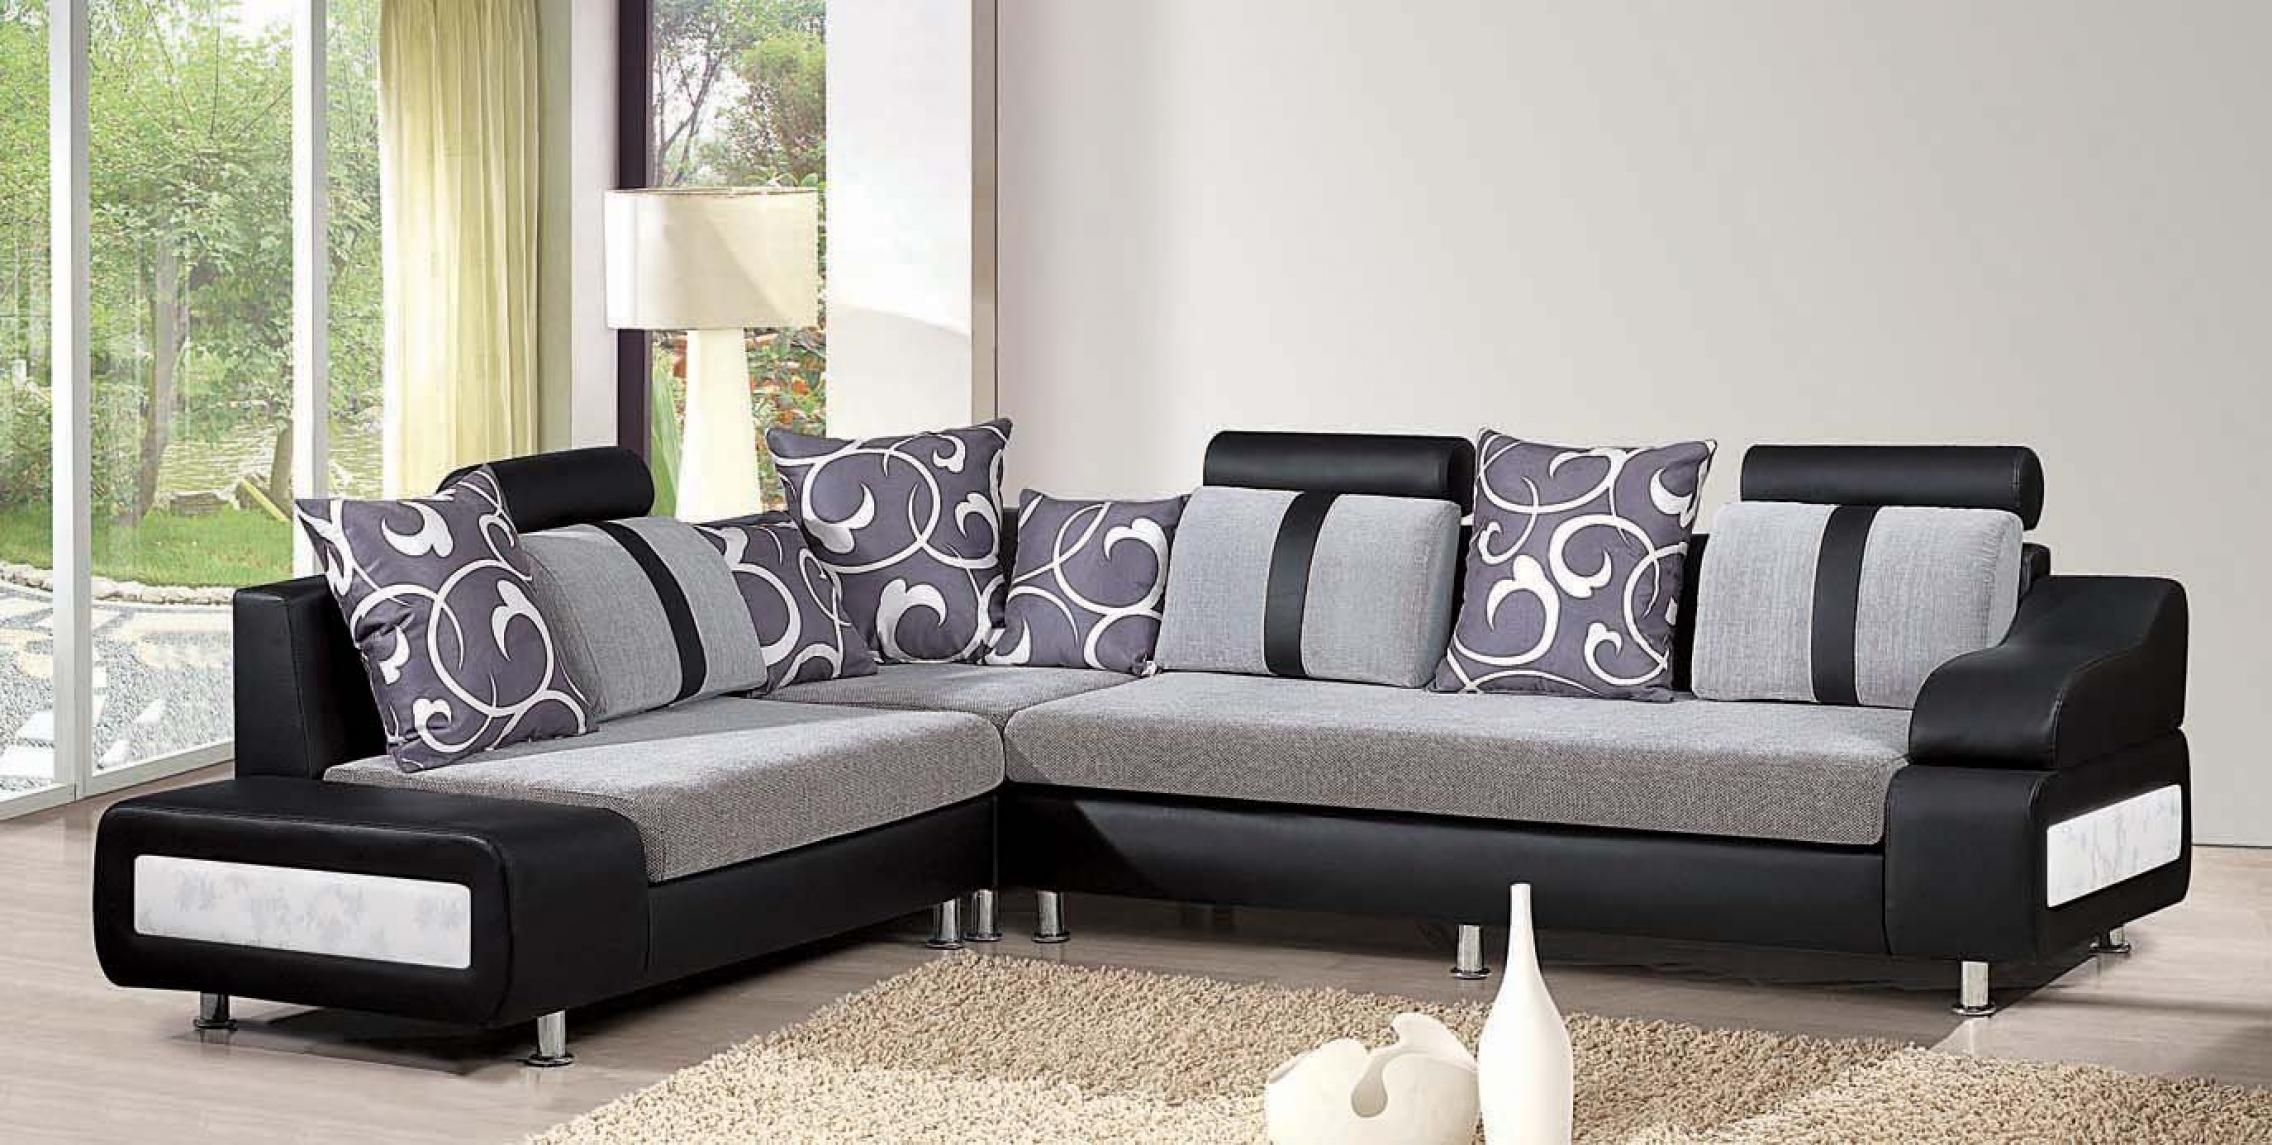 59196C33240Fa72Ac19756B964542A2E With Elegant Sofa Chair regarding Casual Sofas And Chairs